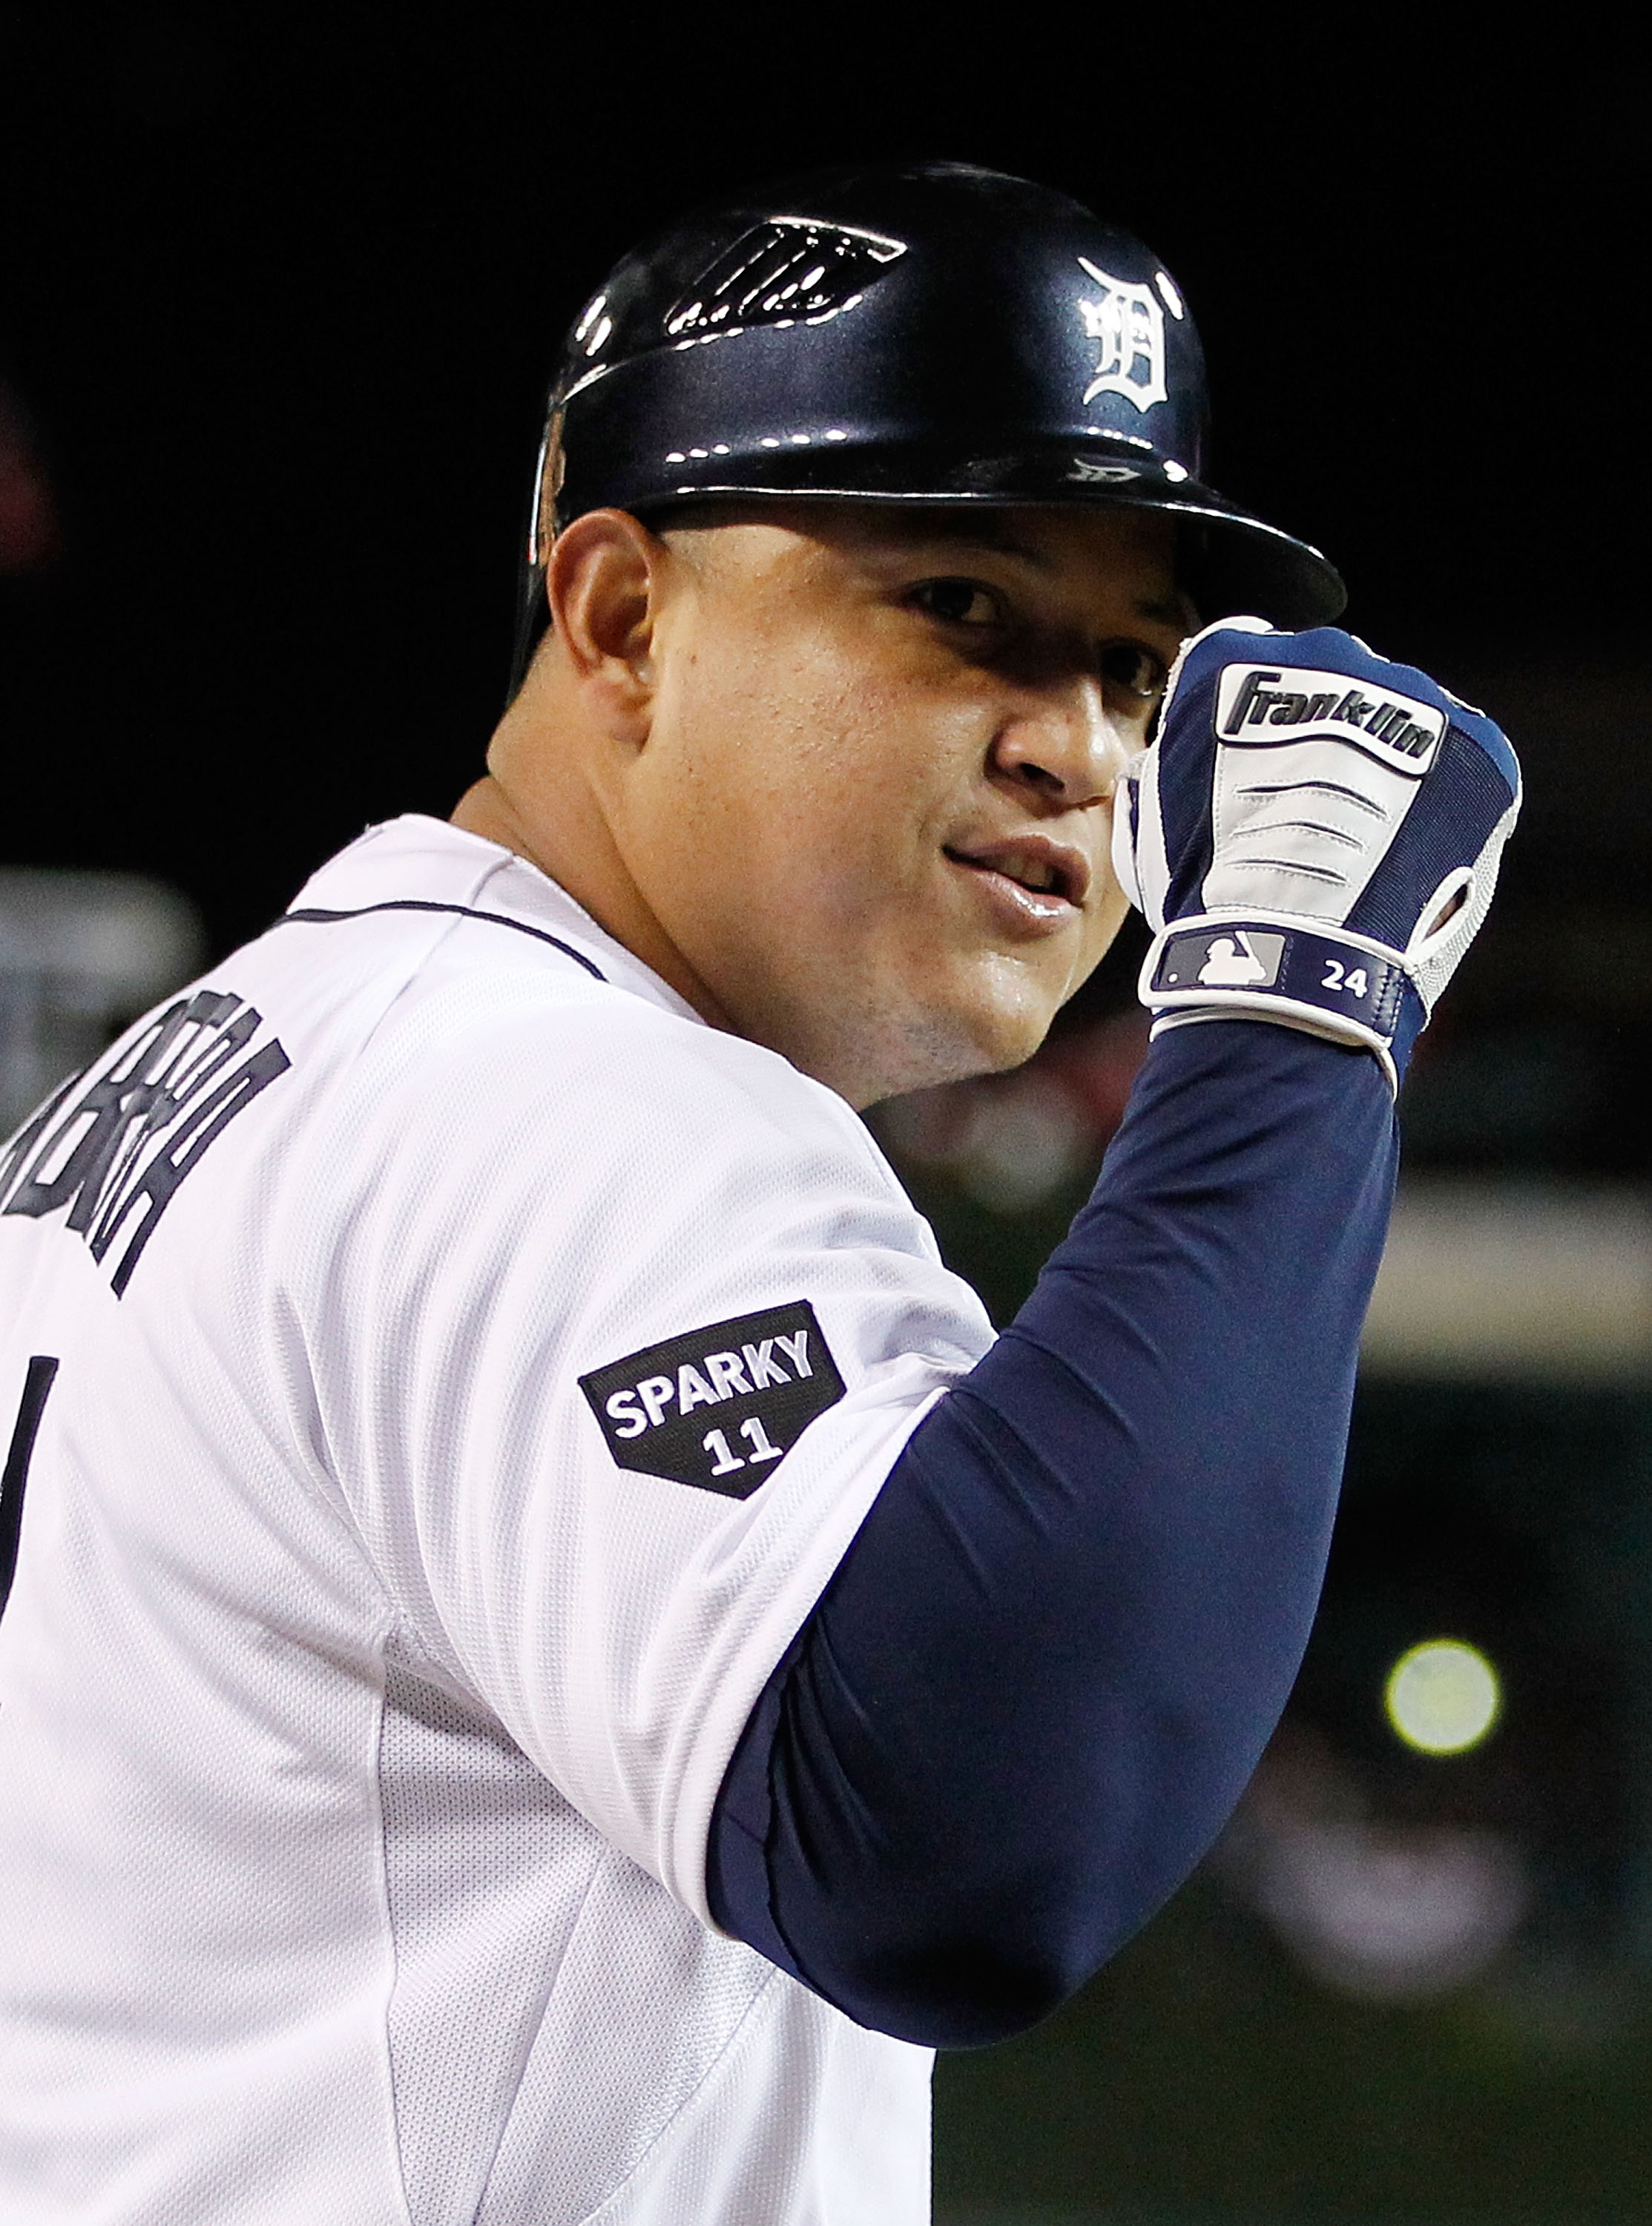 Charitybuzz: Triple Crown Winner, Miguel Cabrera's ...